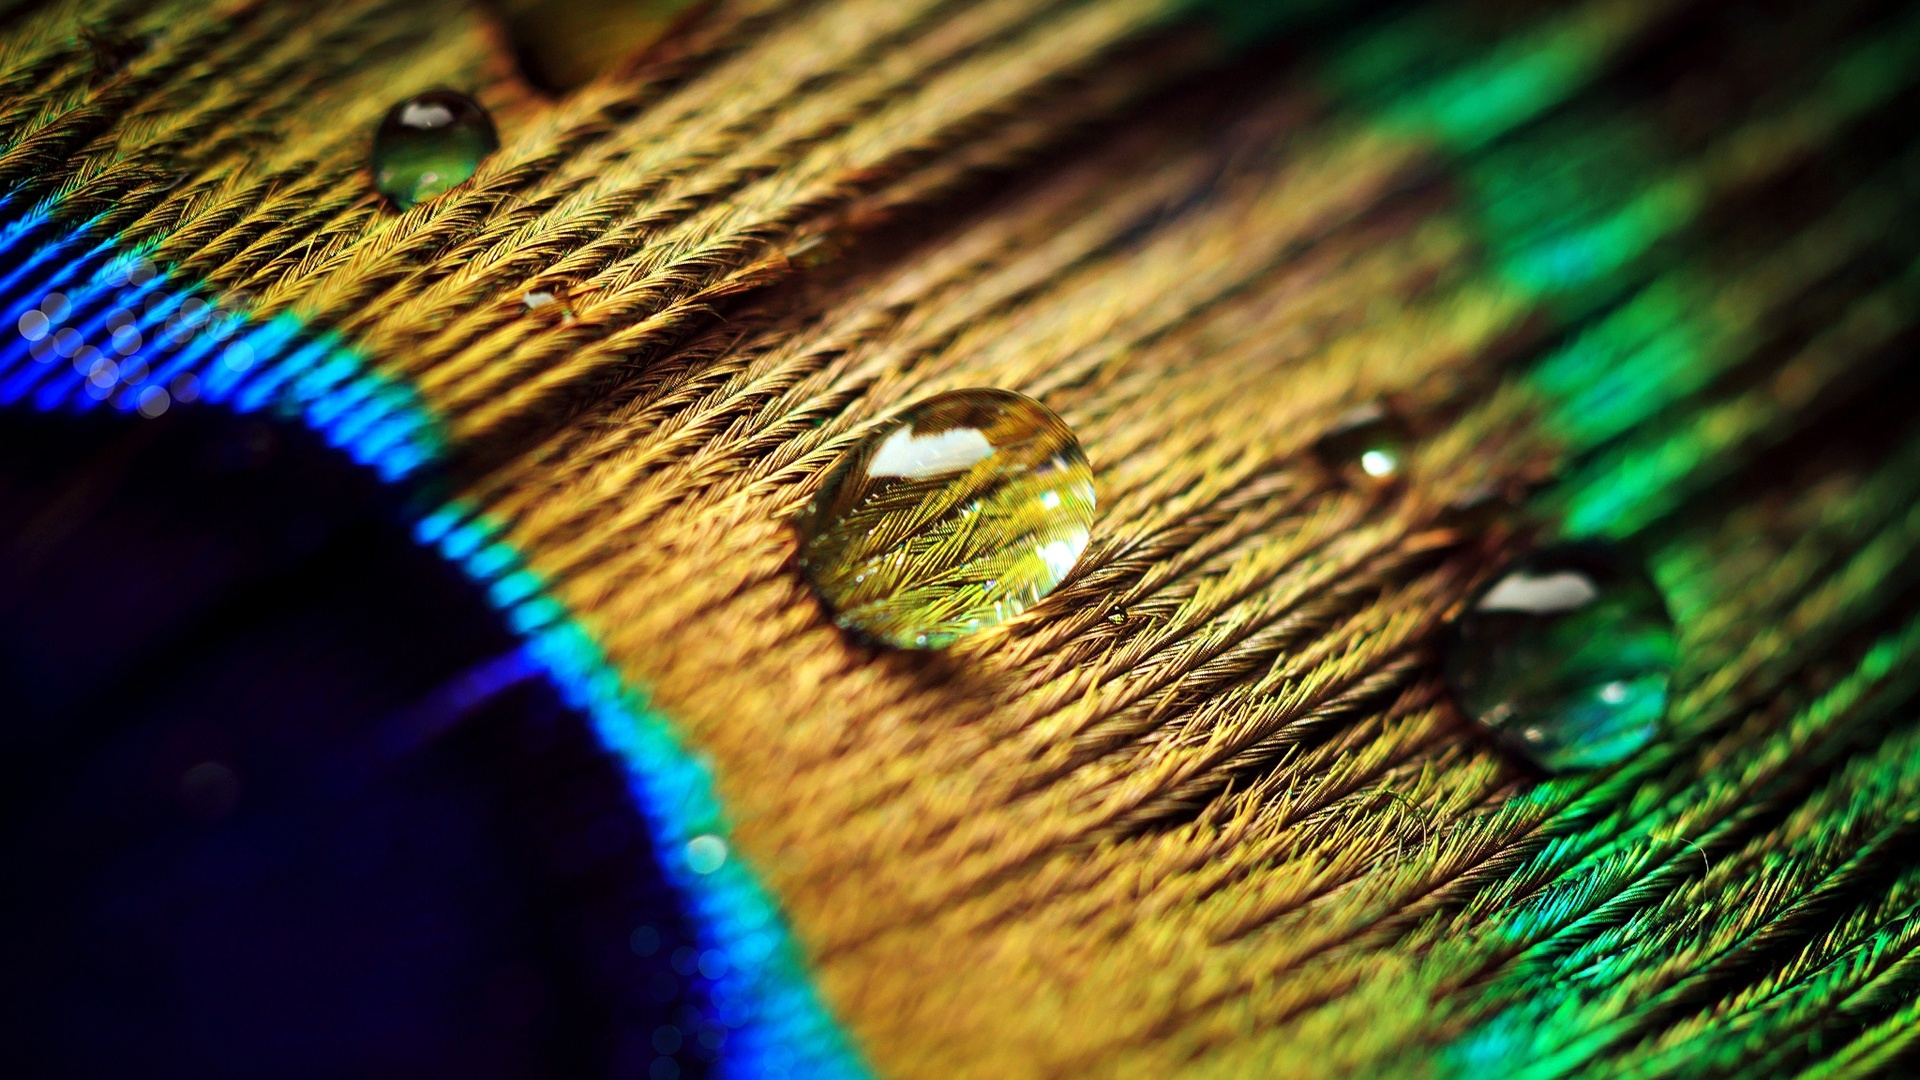 Peacock Feather Water Drops Macro Photography 640x1136